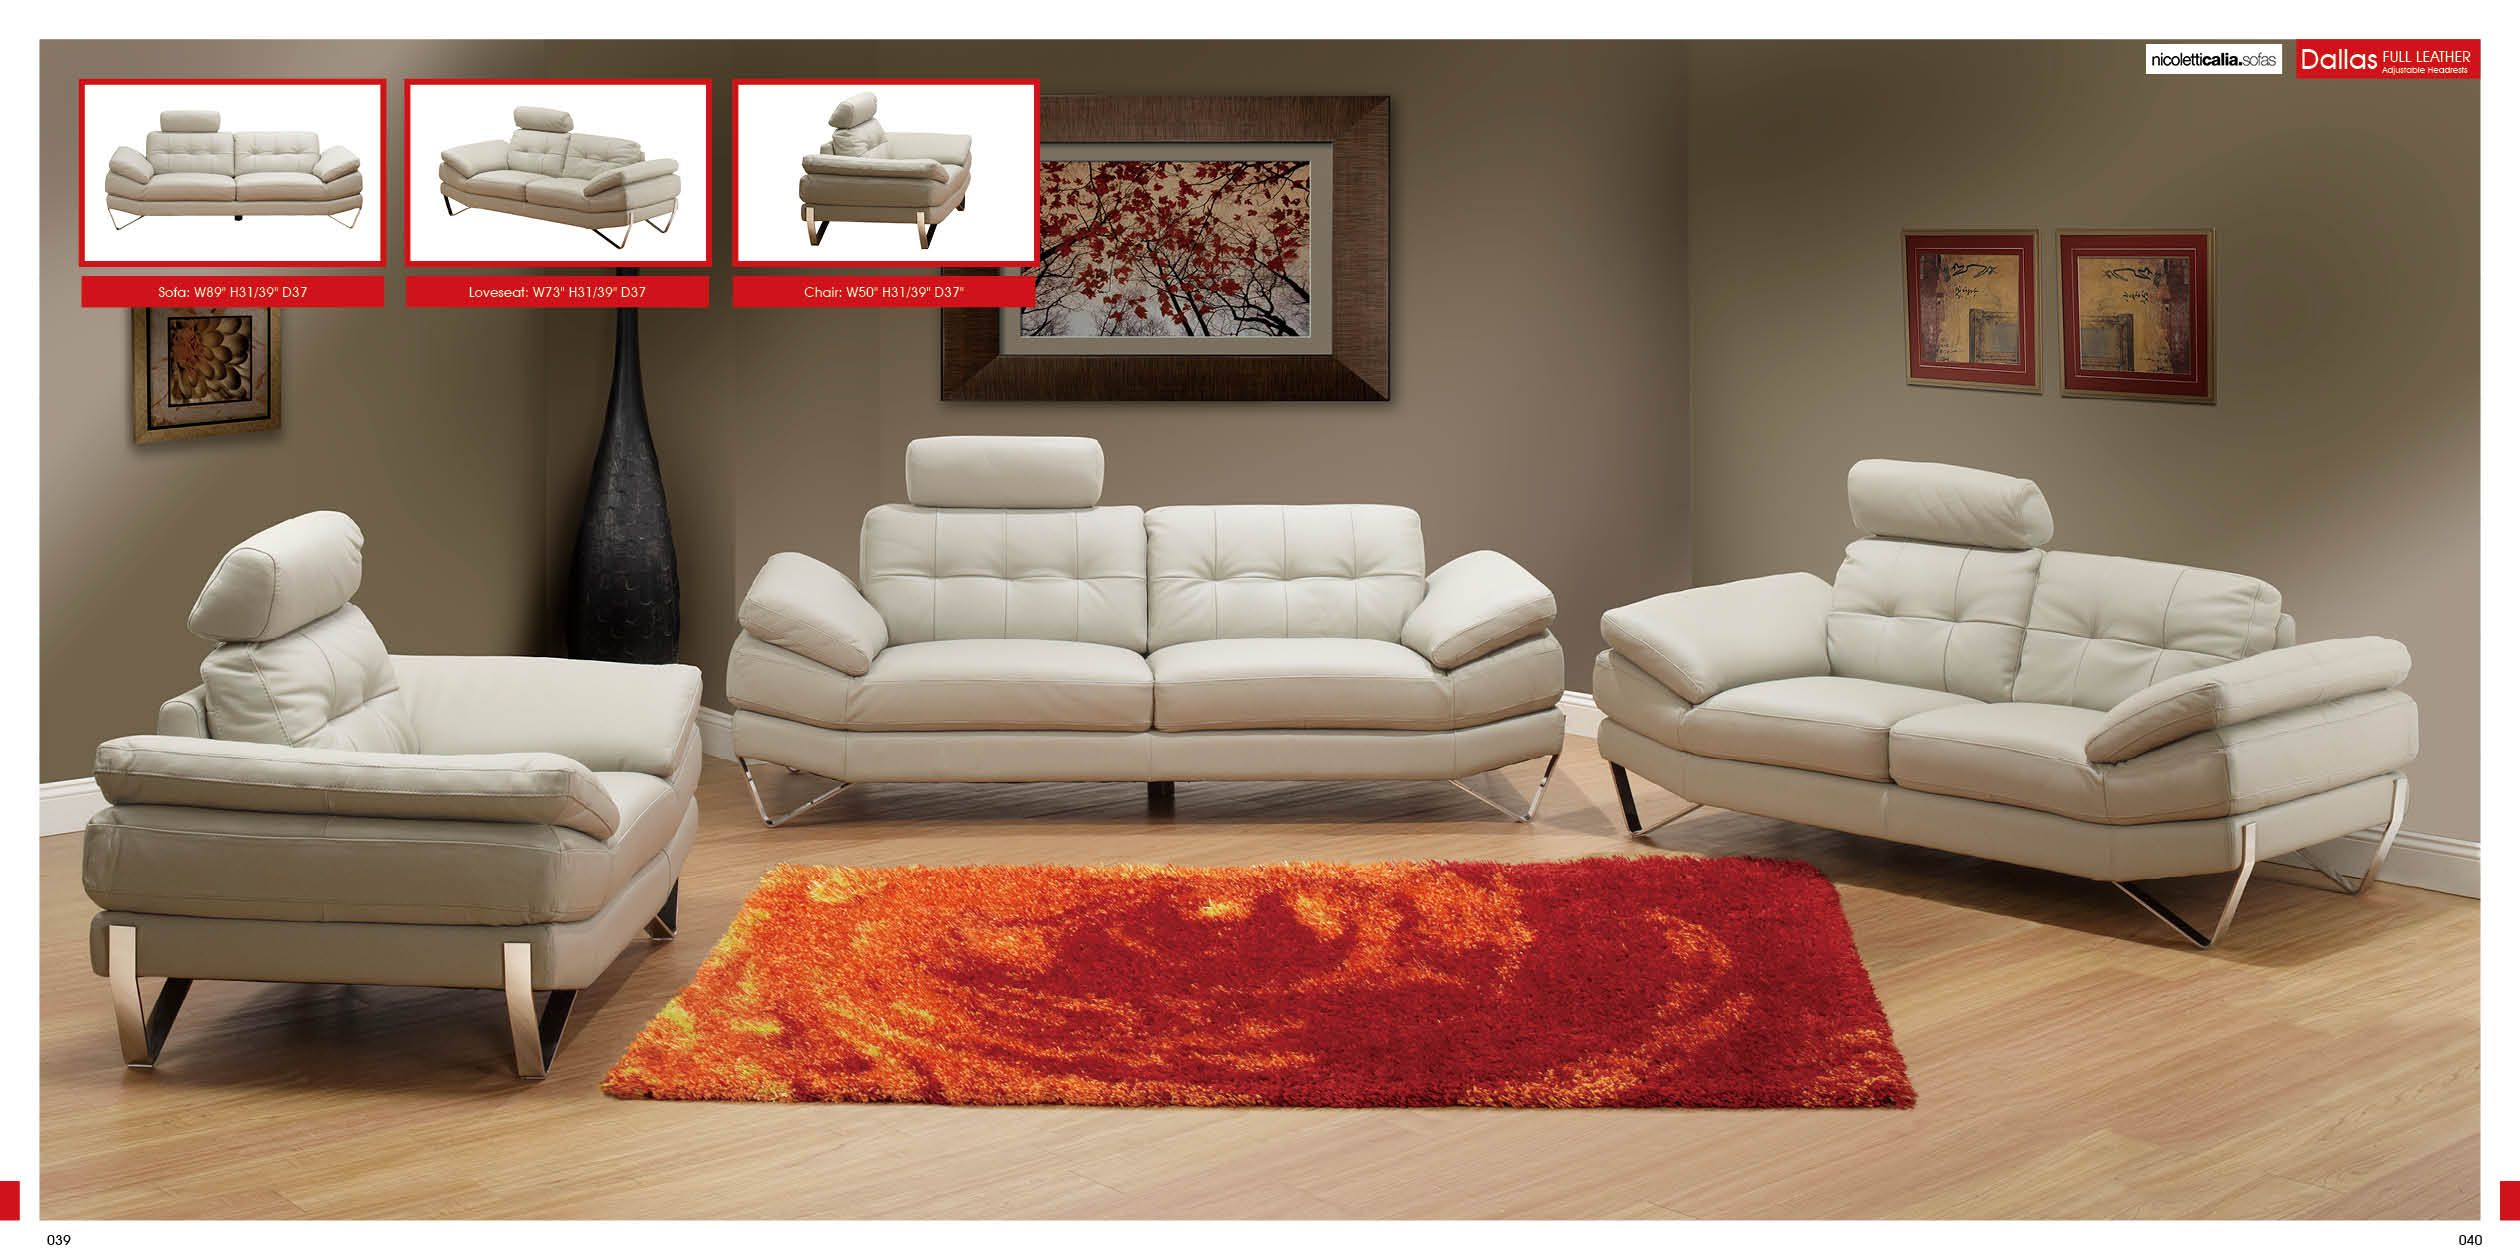 Beautiful Furniture Living Room Set   Http://infolitico.com/furniture Living